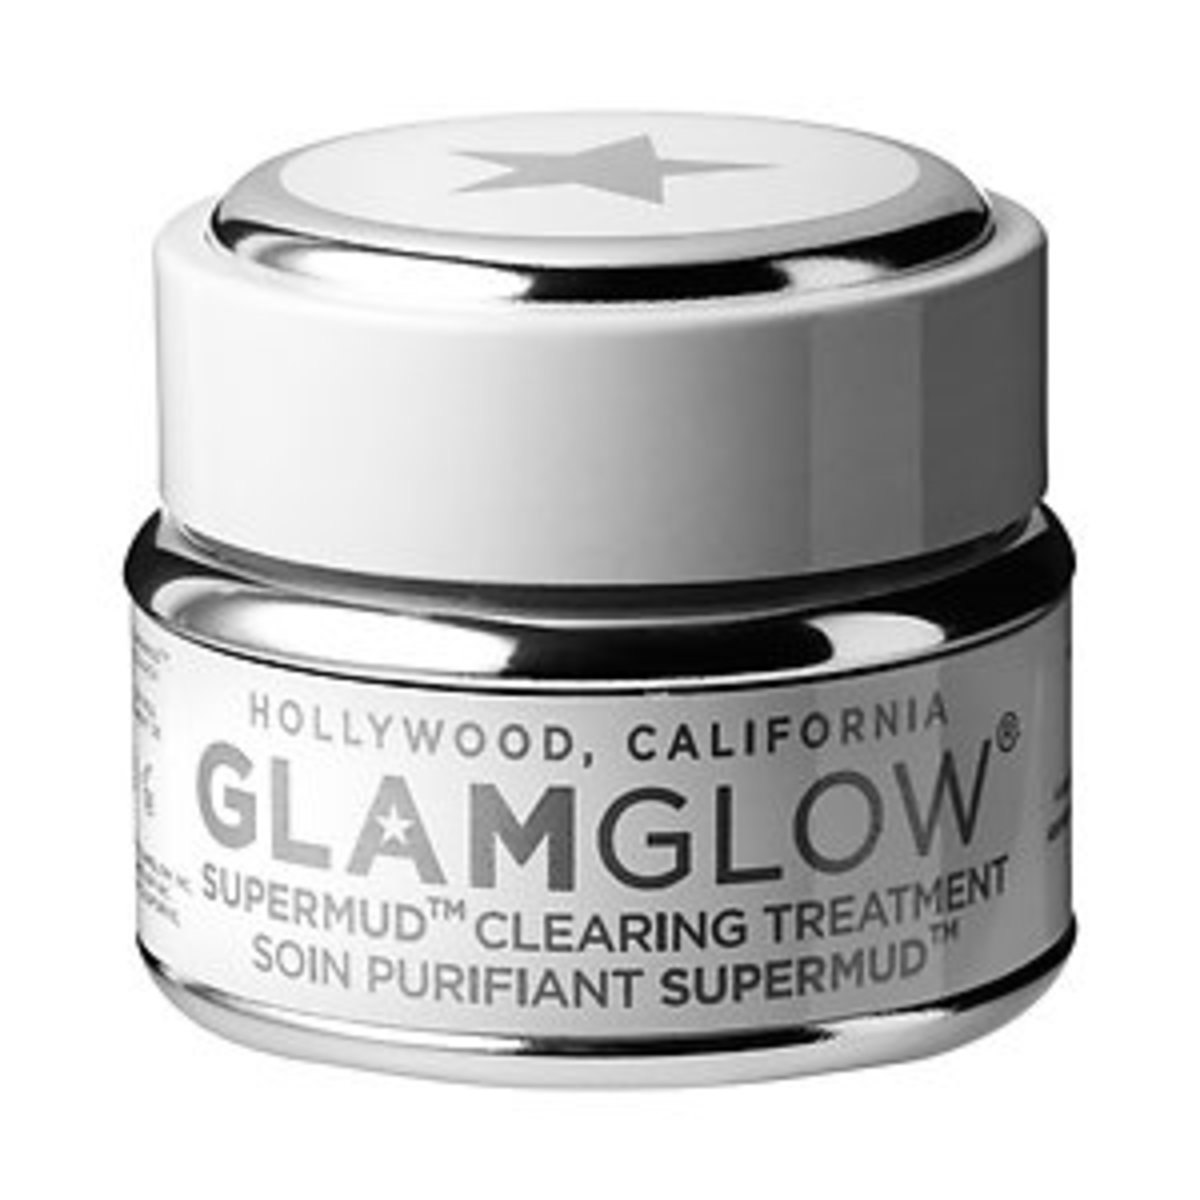 Glamglow Supermud Clearing Treatment, $69, available at Sephora.